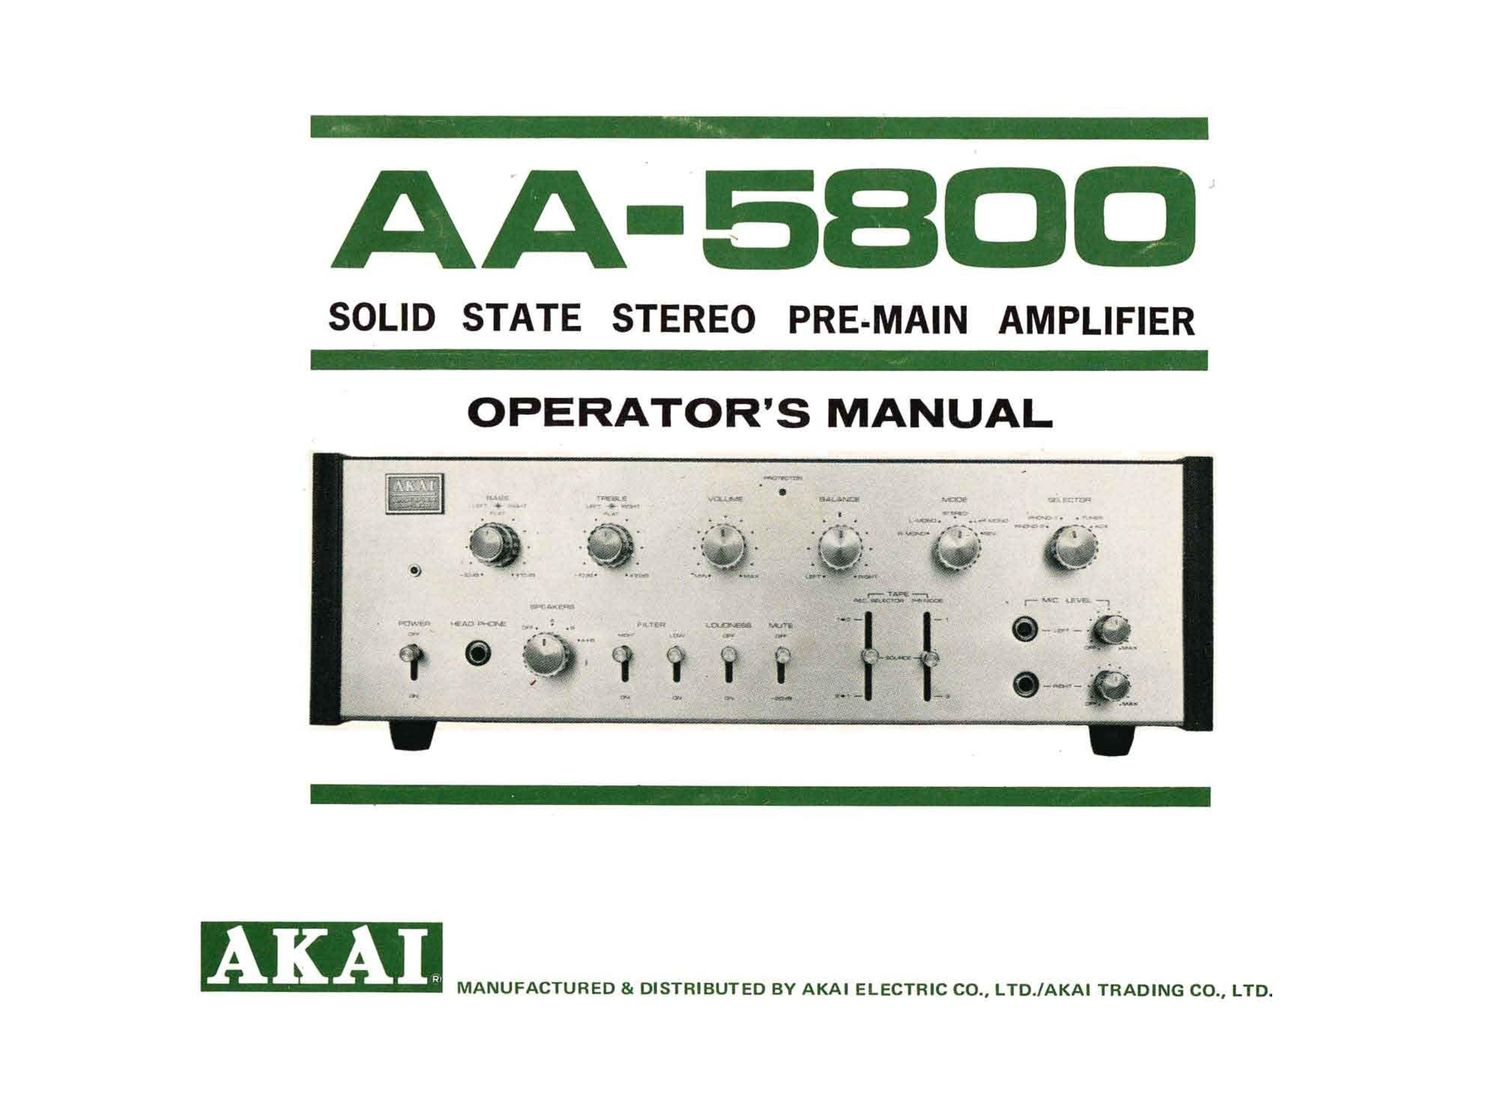 Akai AA 5800 Owners Manual